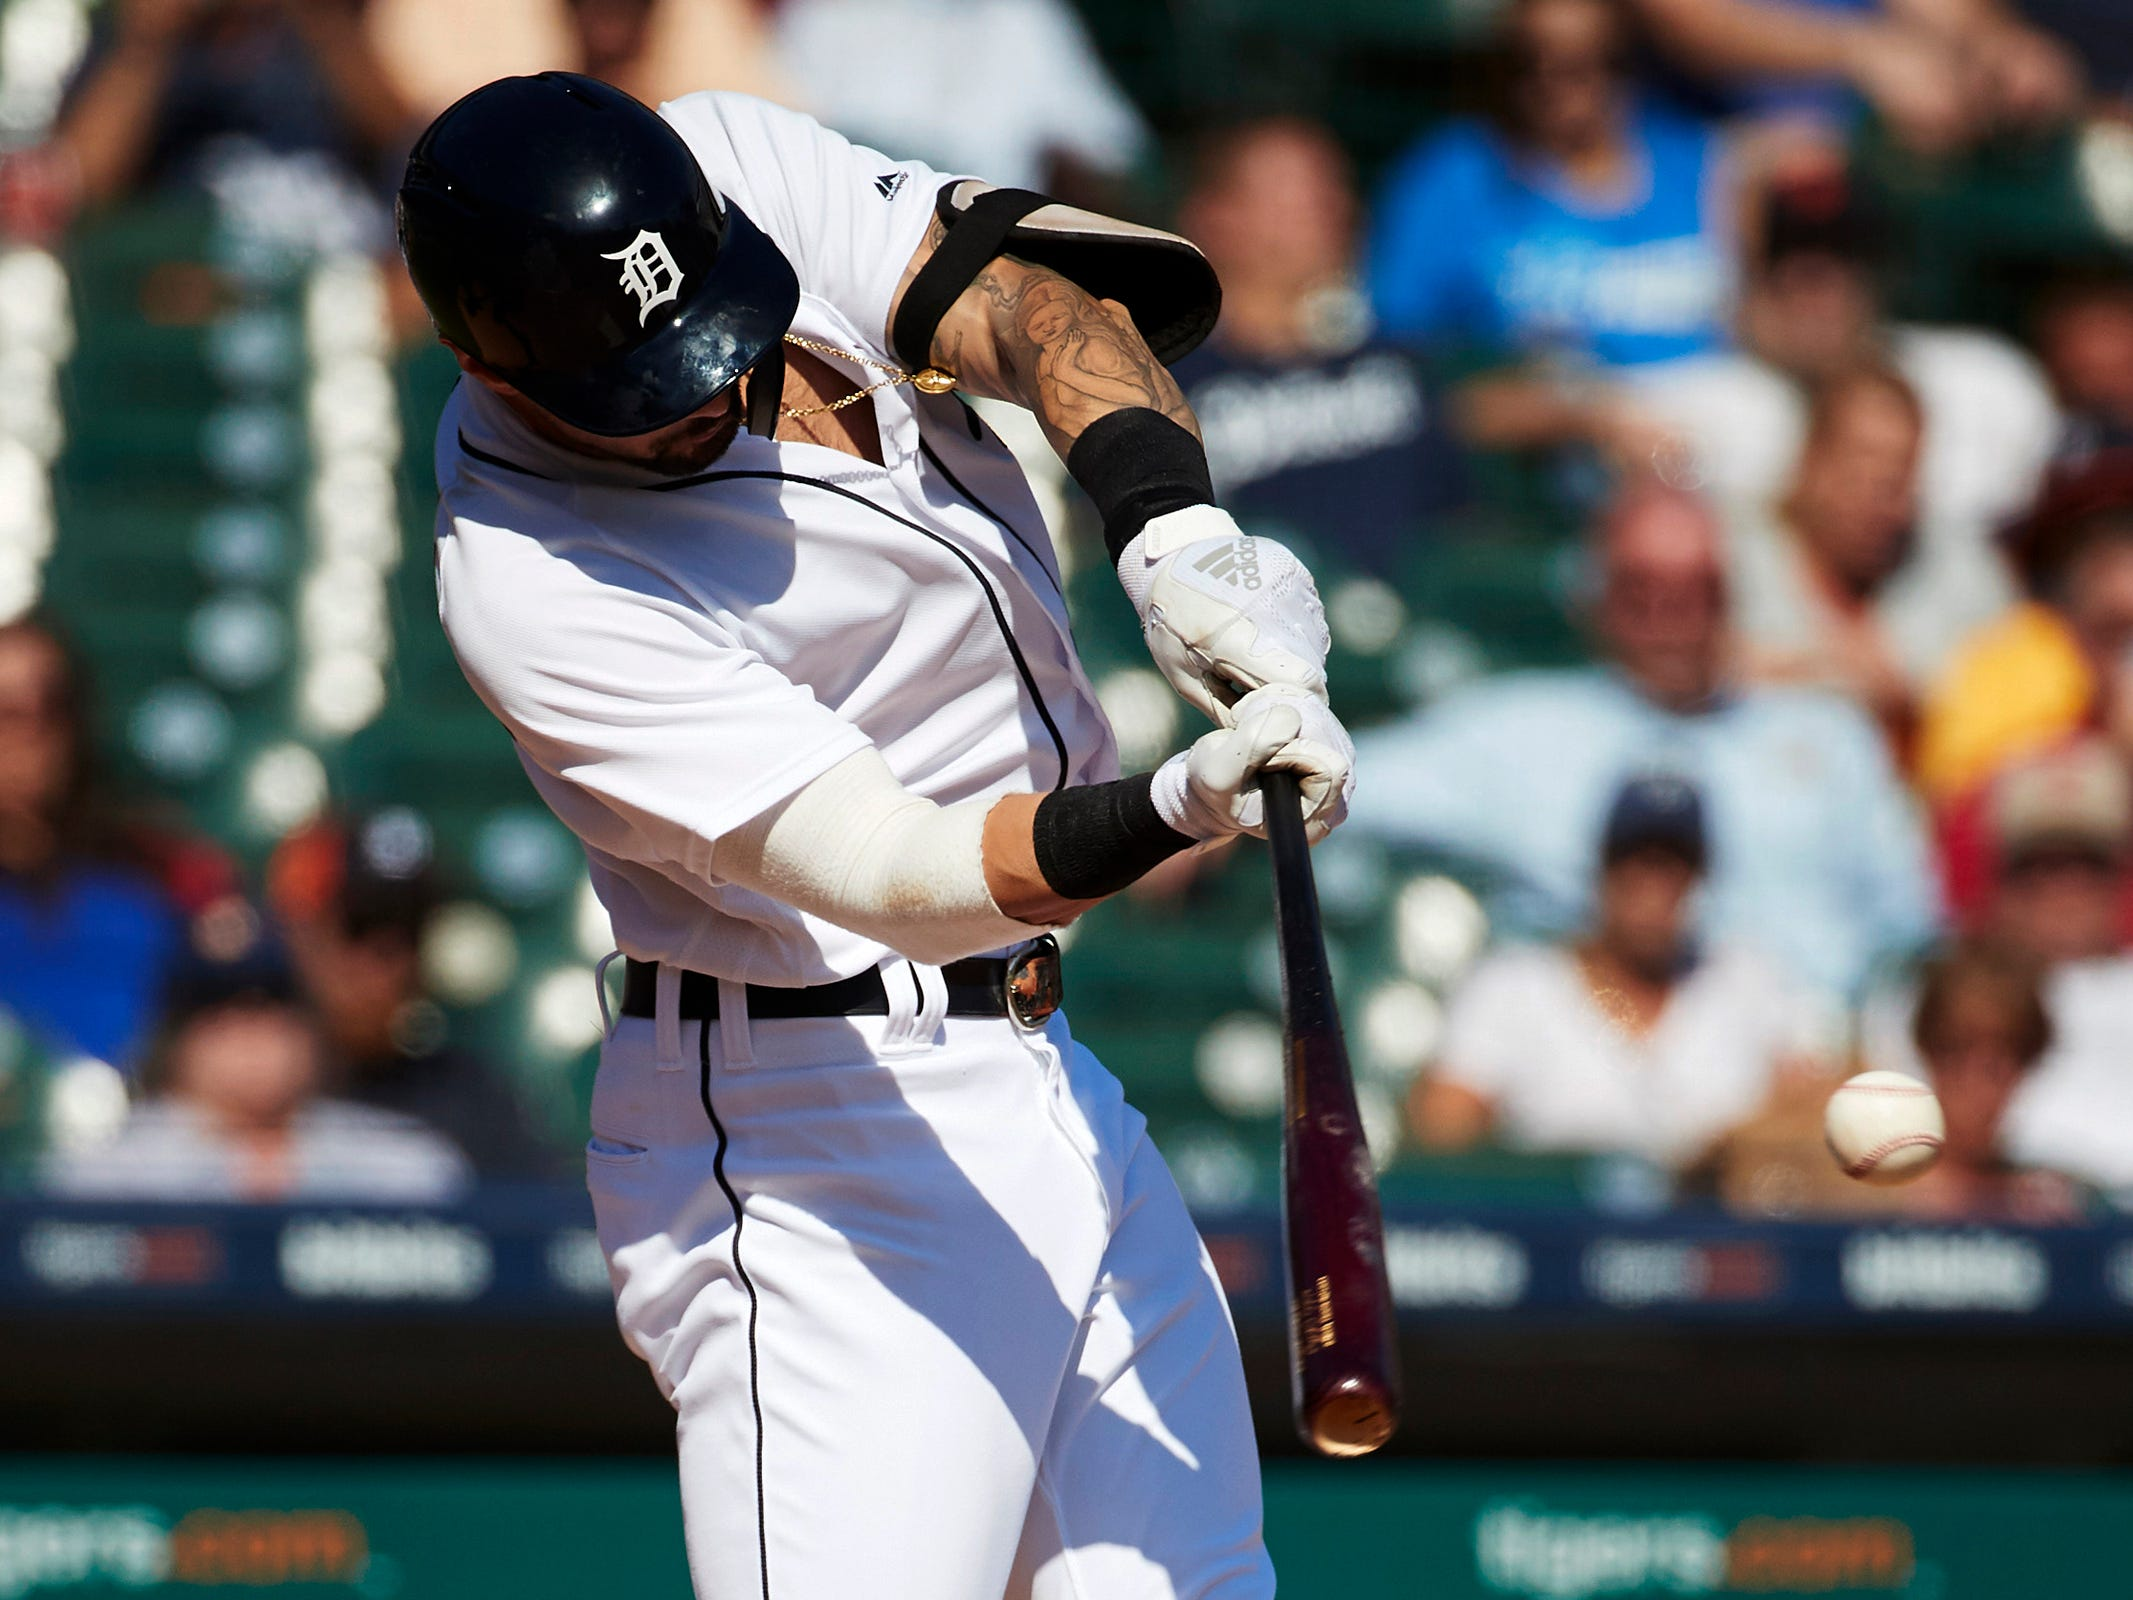 Tigers designated hitter Nicholas Castellanos hits a two-run home run in the seventh inning of the Tigers' 5-4 loss to the Astros on Wednesday, Sept. 12, 2018, at Comerica Park.